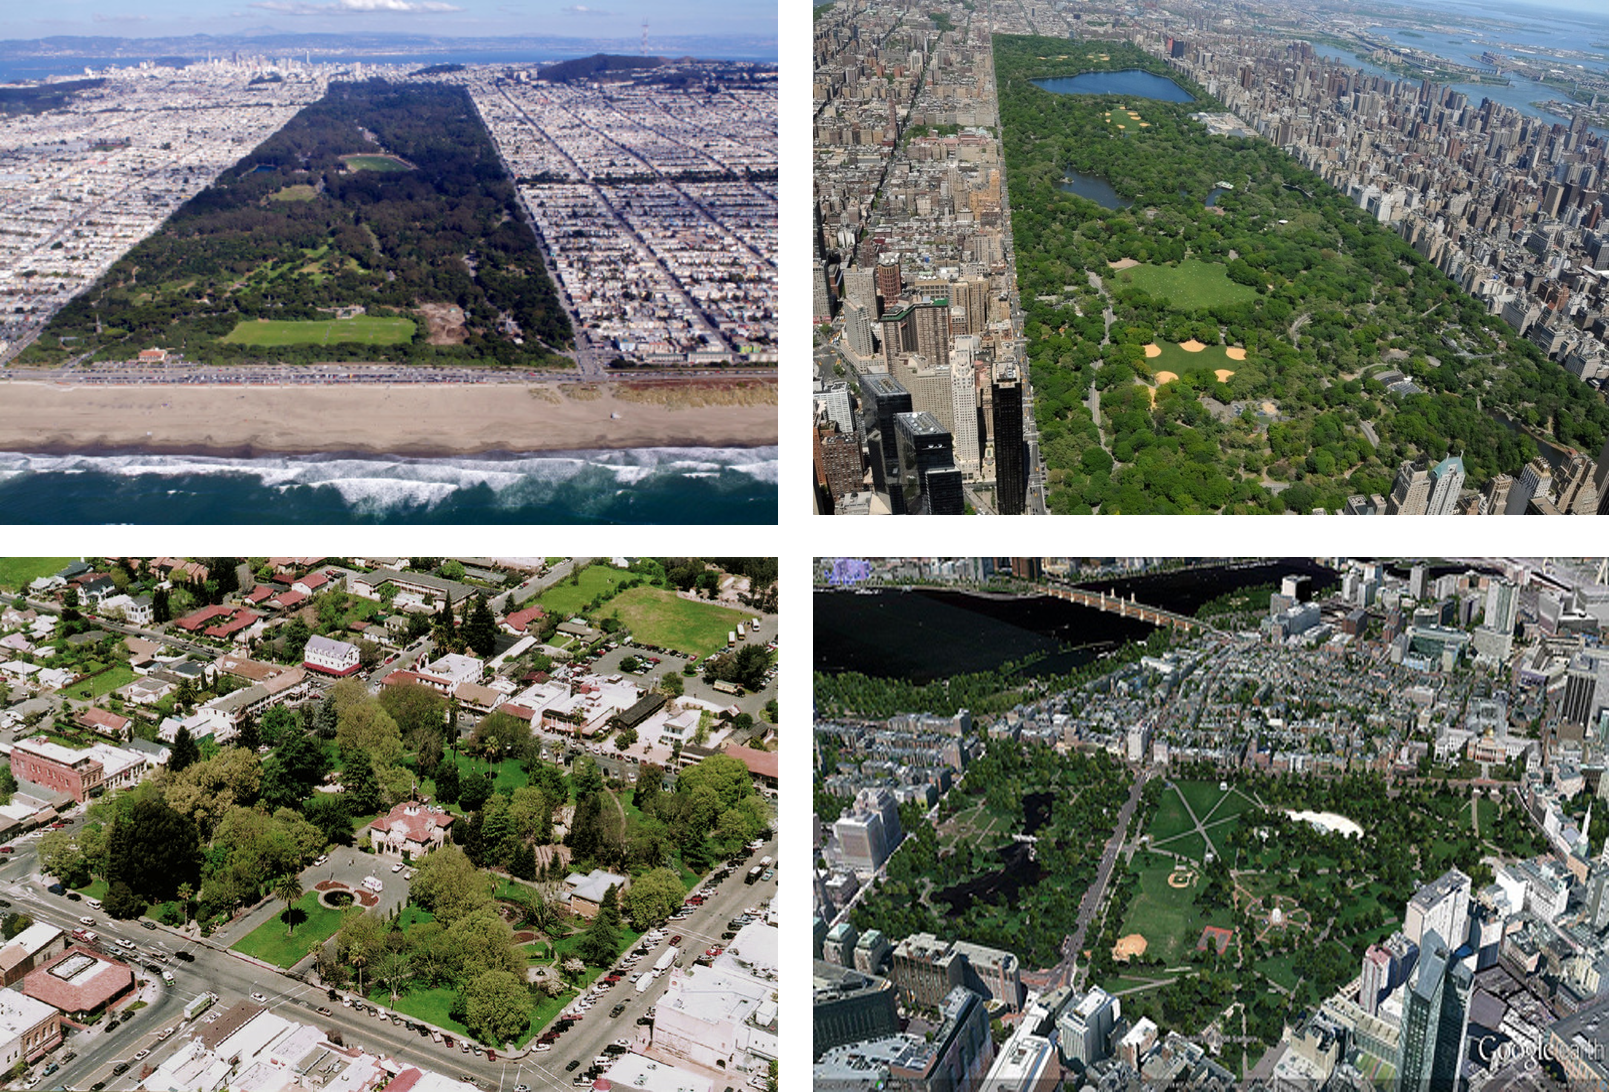 AMERICAN PARK The nation built parks large and small as microcosms of nature within prosperous and rapidly expanding towns and cities from coast to coast (Clockwise from upper left: Golden Gate Park, Central Park, Boston Common, Sonoma Square).